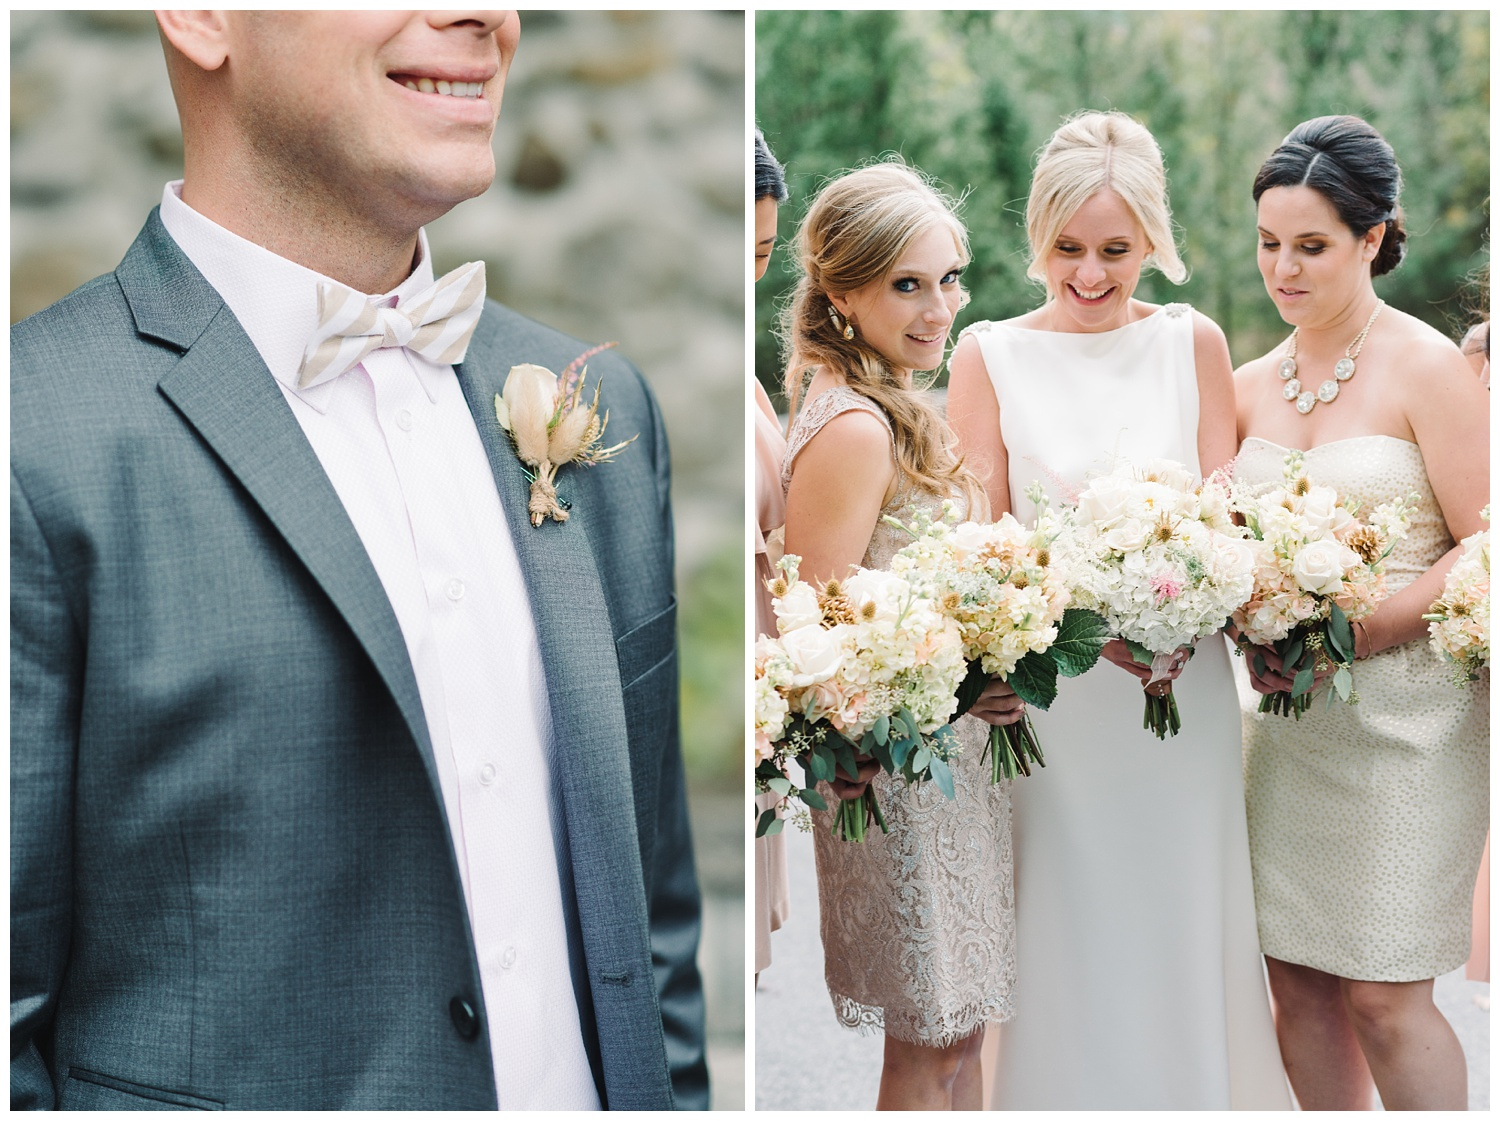 Taukus Wedding by Michelle Lange Photography